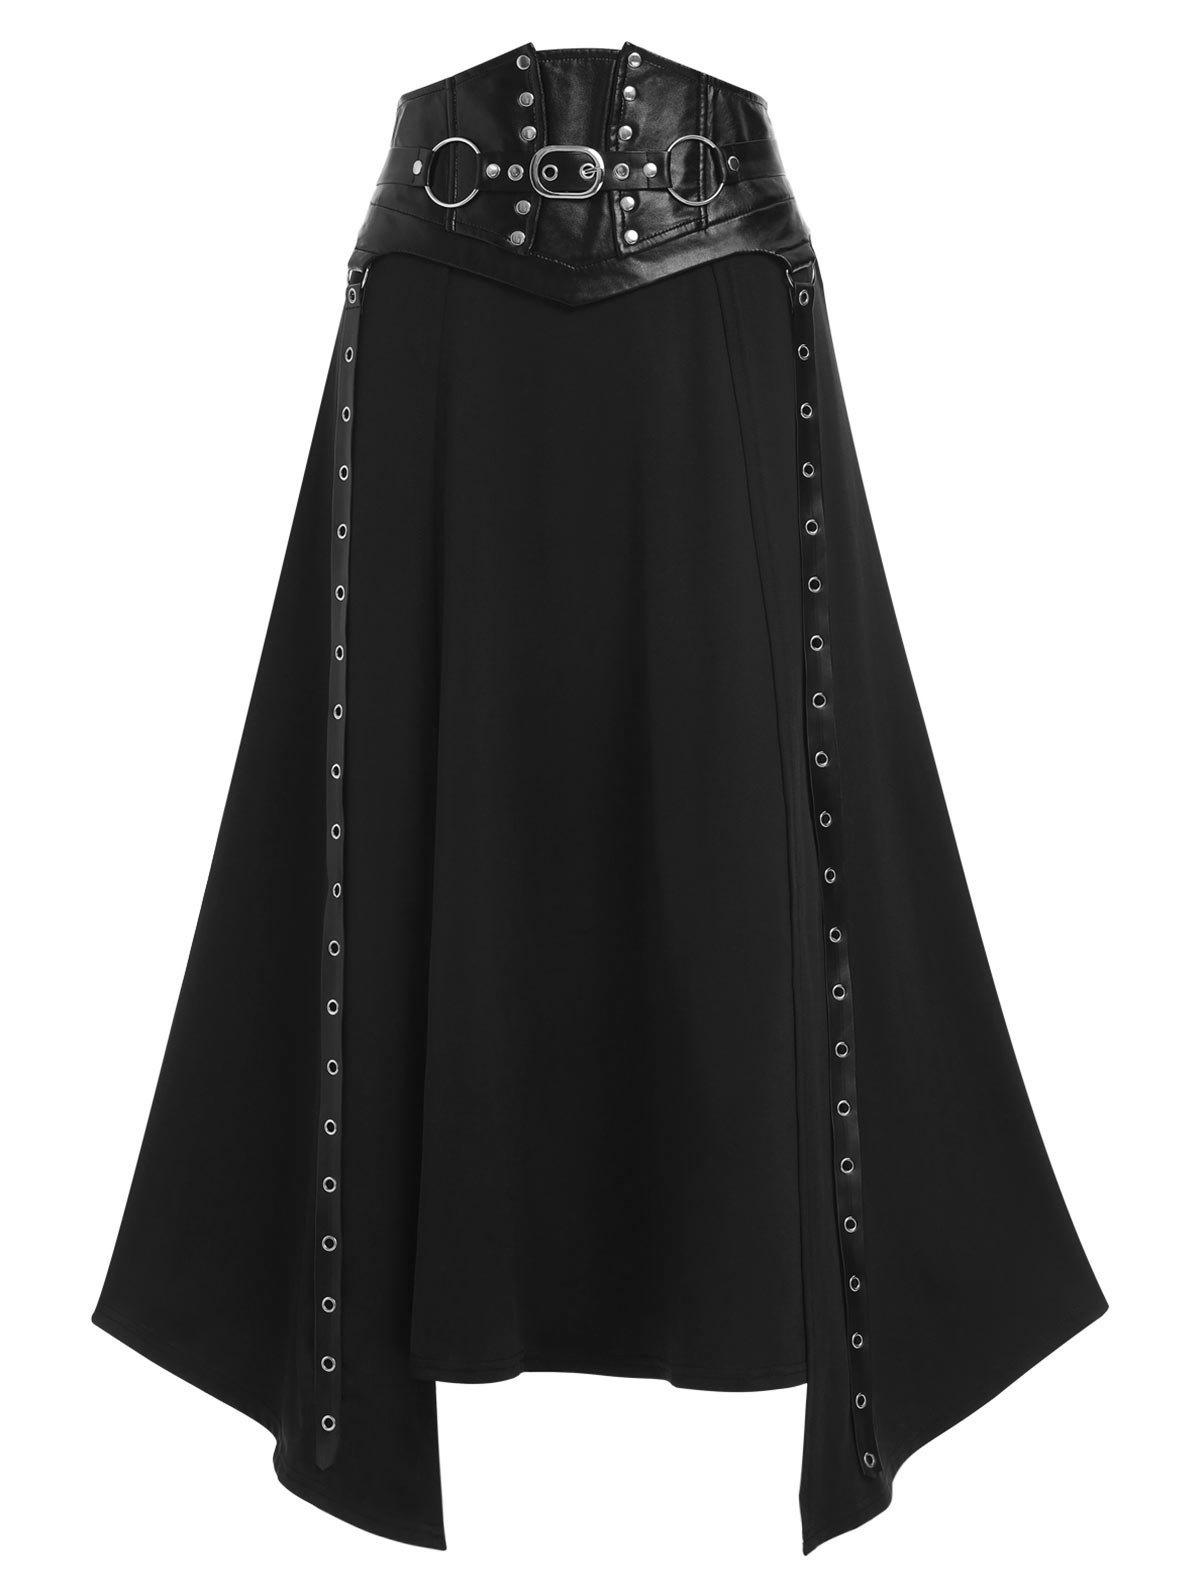 Shop Faux Leather Buckle Strap Rivet Embellished Lace-up Asymmetric Gothic Skirt